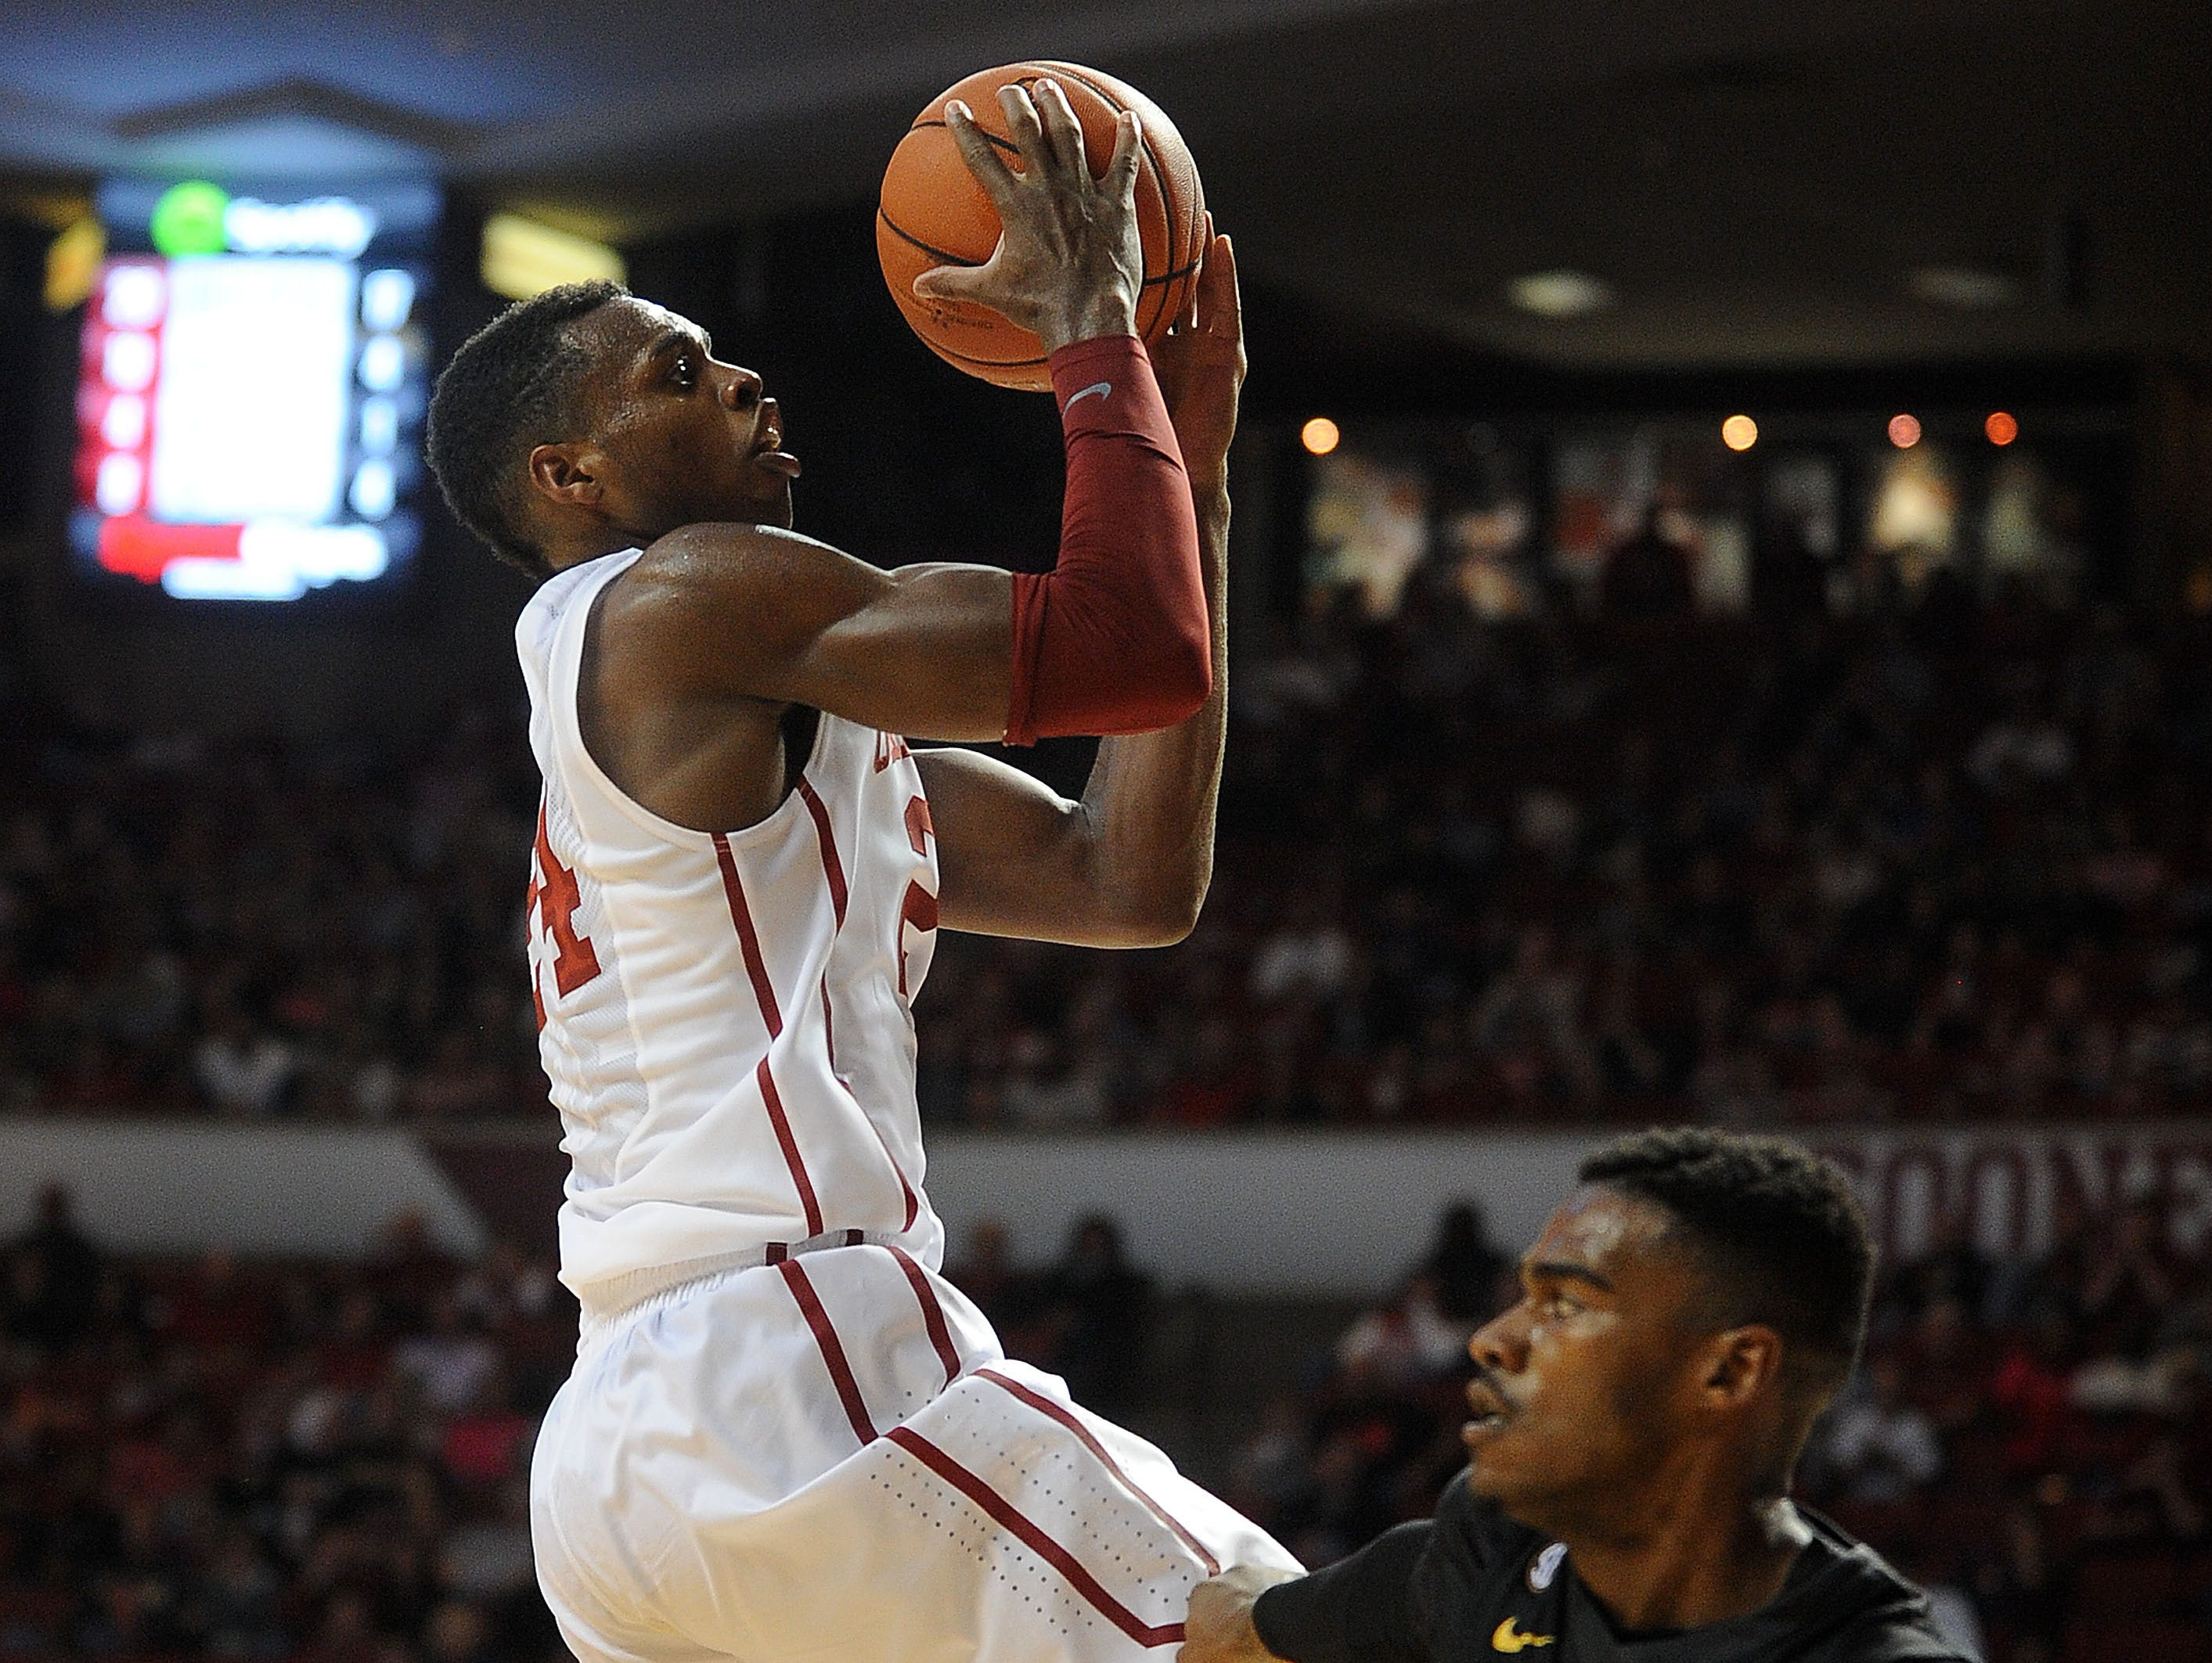 Oklahoma Sooners guard Buddy Hield (24) attempts a shot around Missouri Tigers guard Keith Shamburger (14) during the second half at Lloyd Noble Center in Norman, Okla. on Friday.